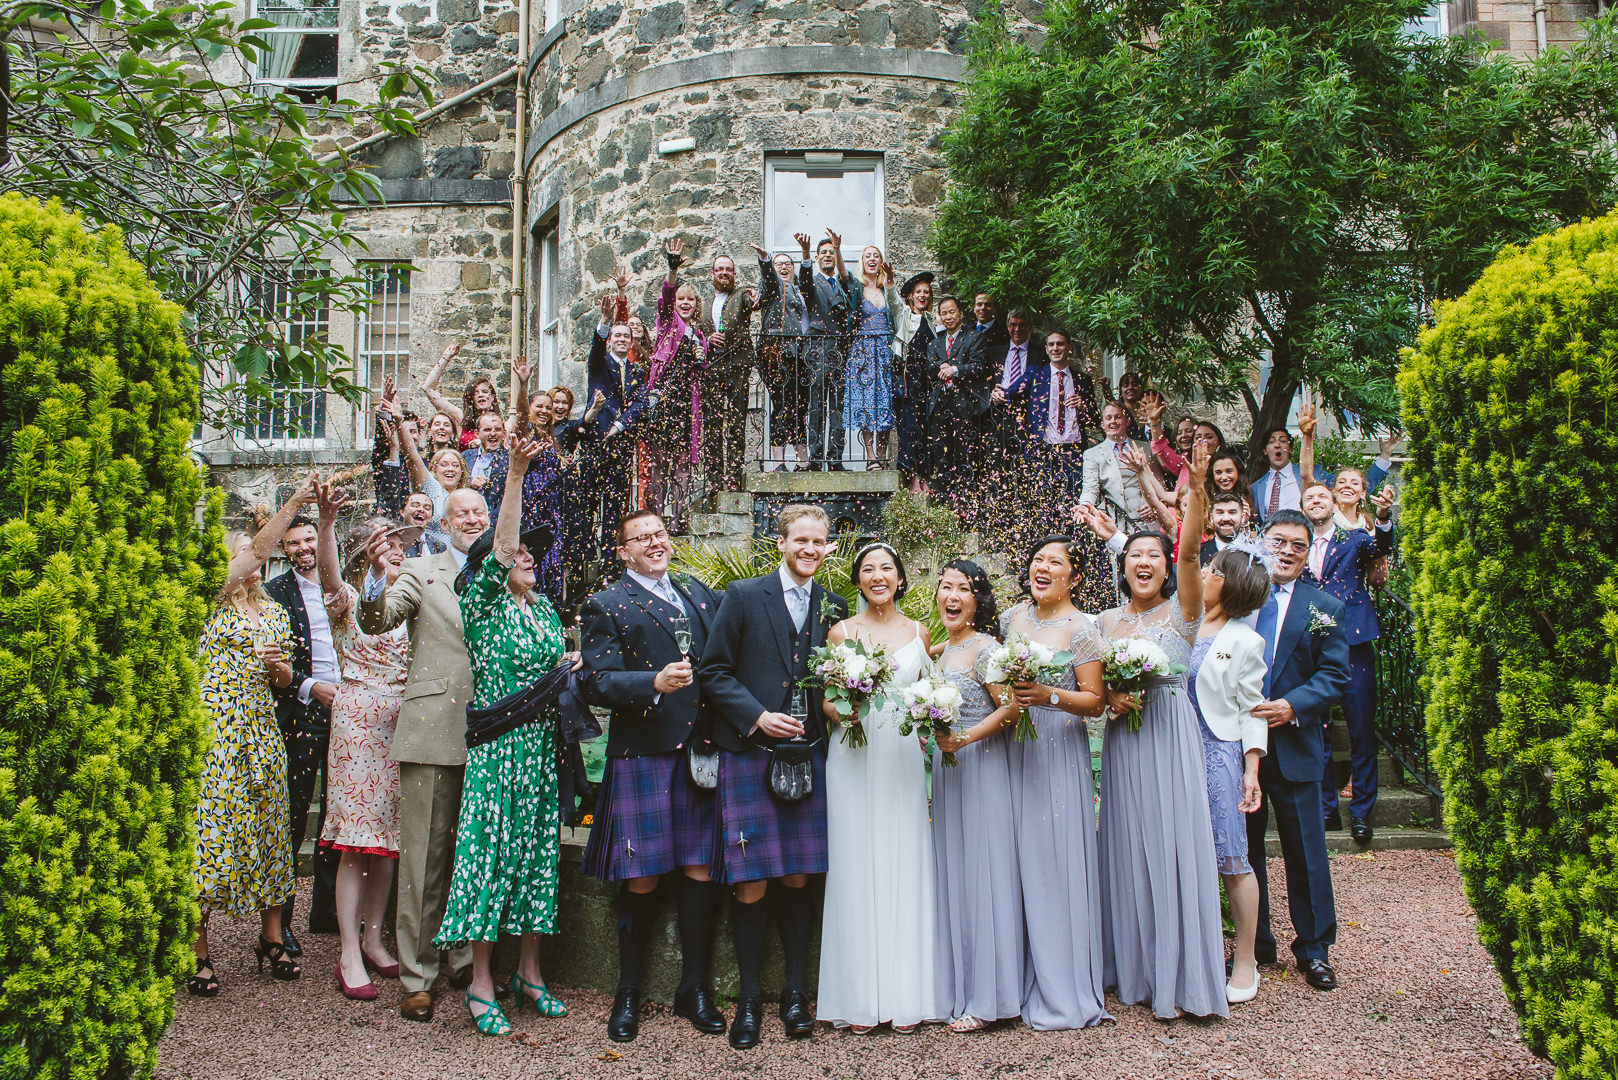 Confetti Group Shot - From my best wedding photos from 2019